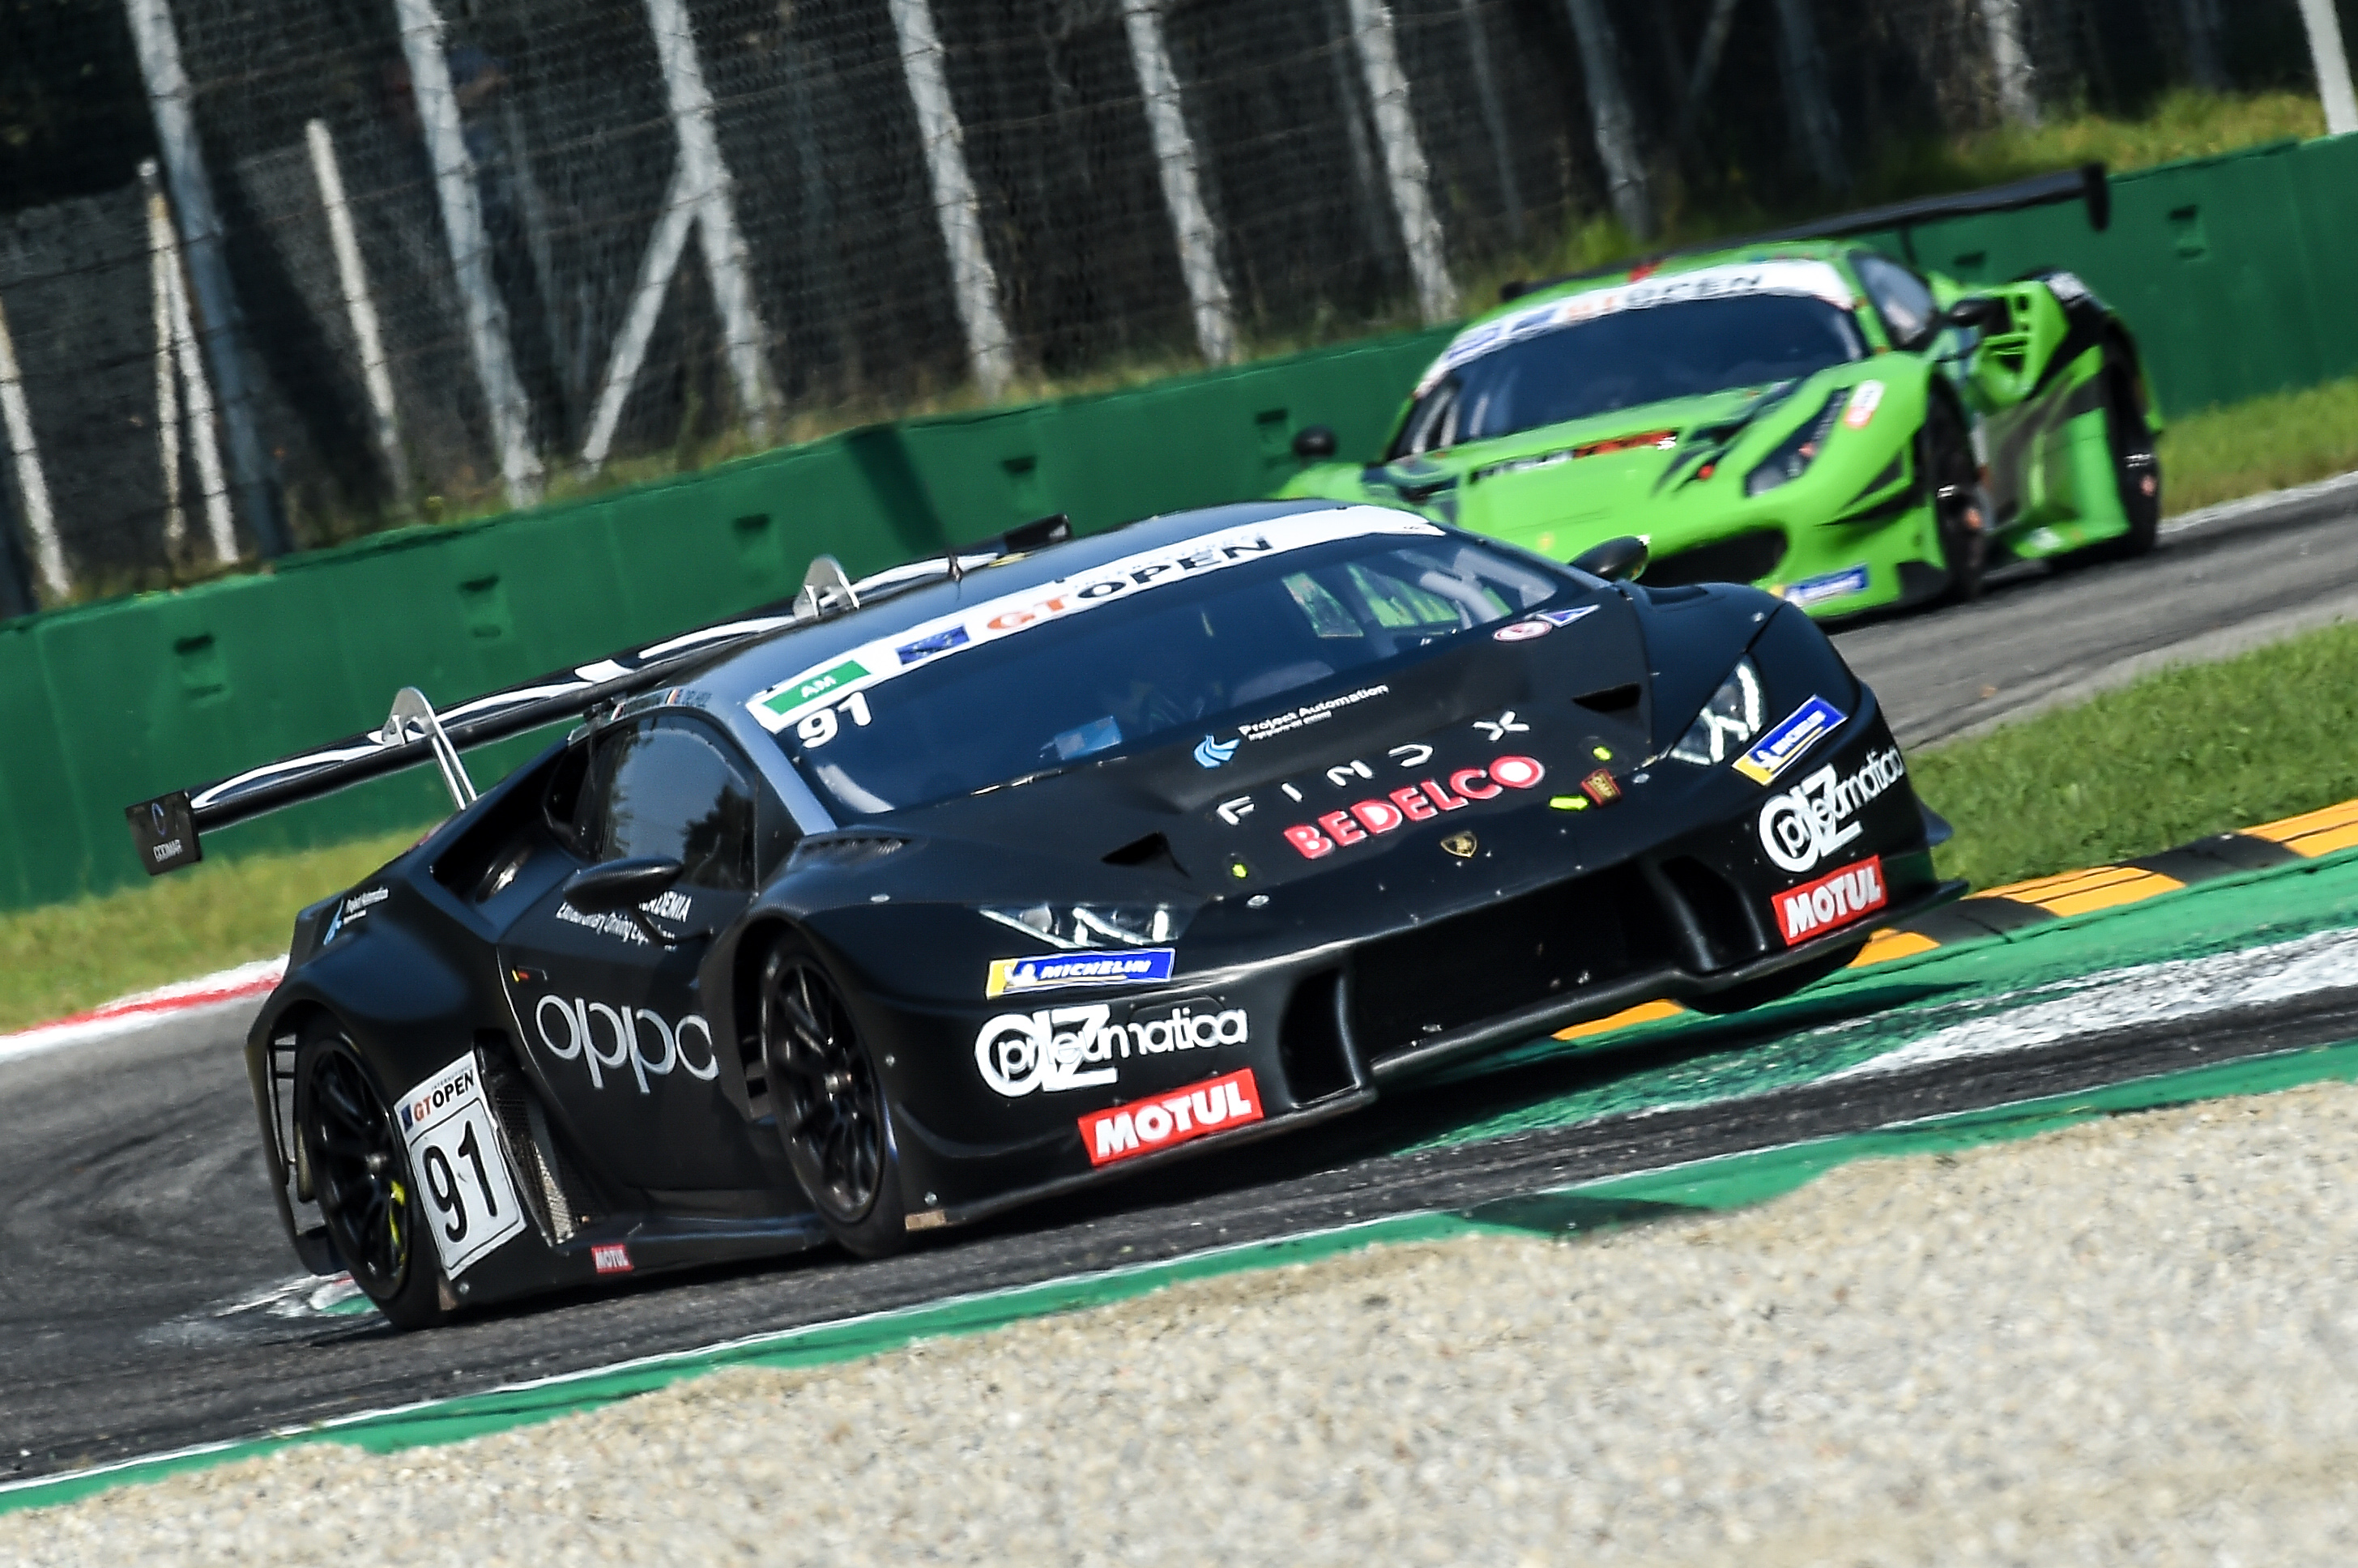 International GT Open - Di Folco-Spinelli clinch a fantastic 4th position at Monza